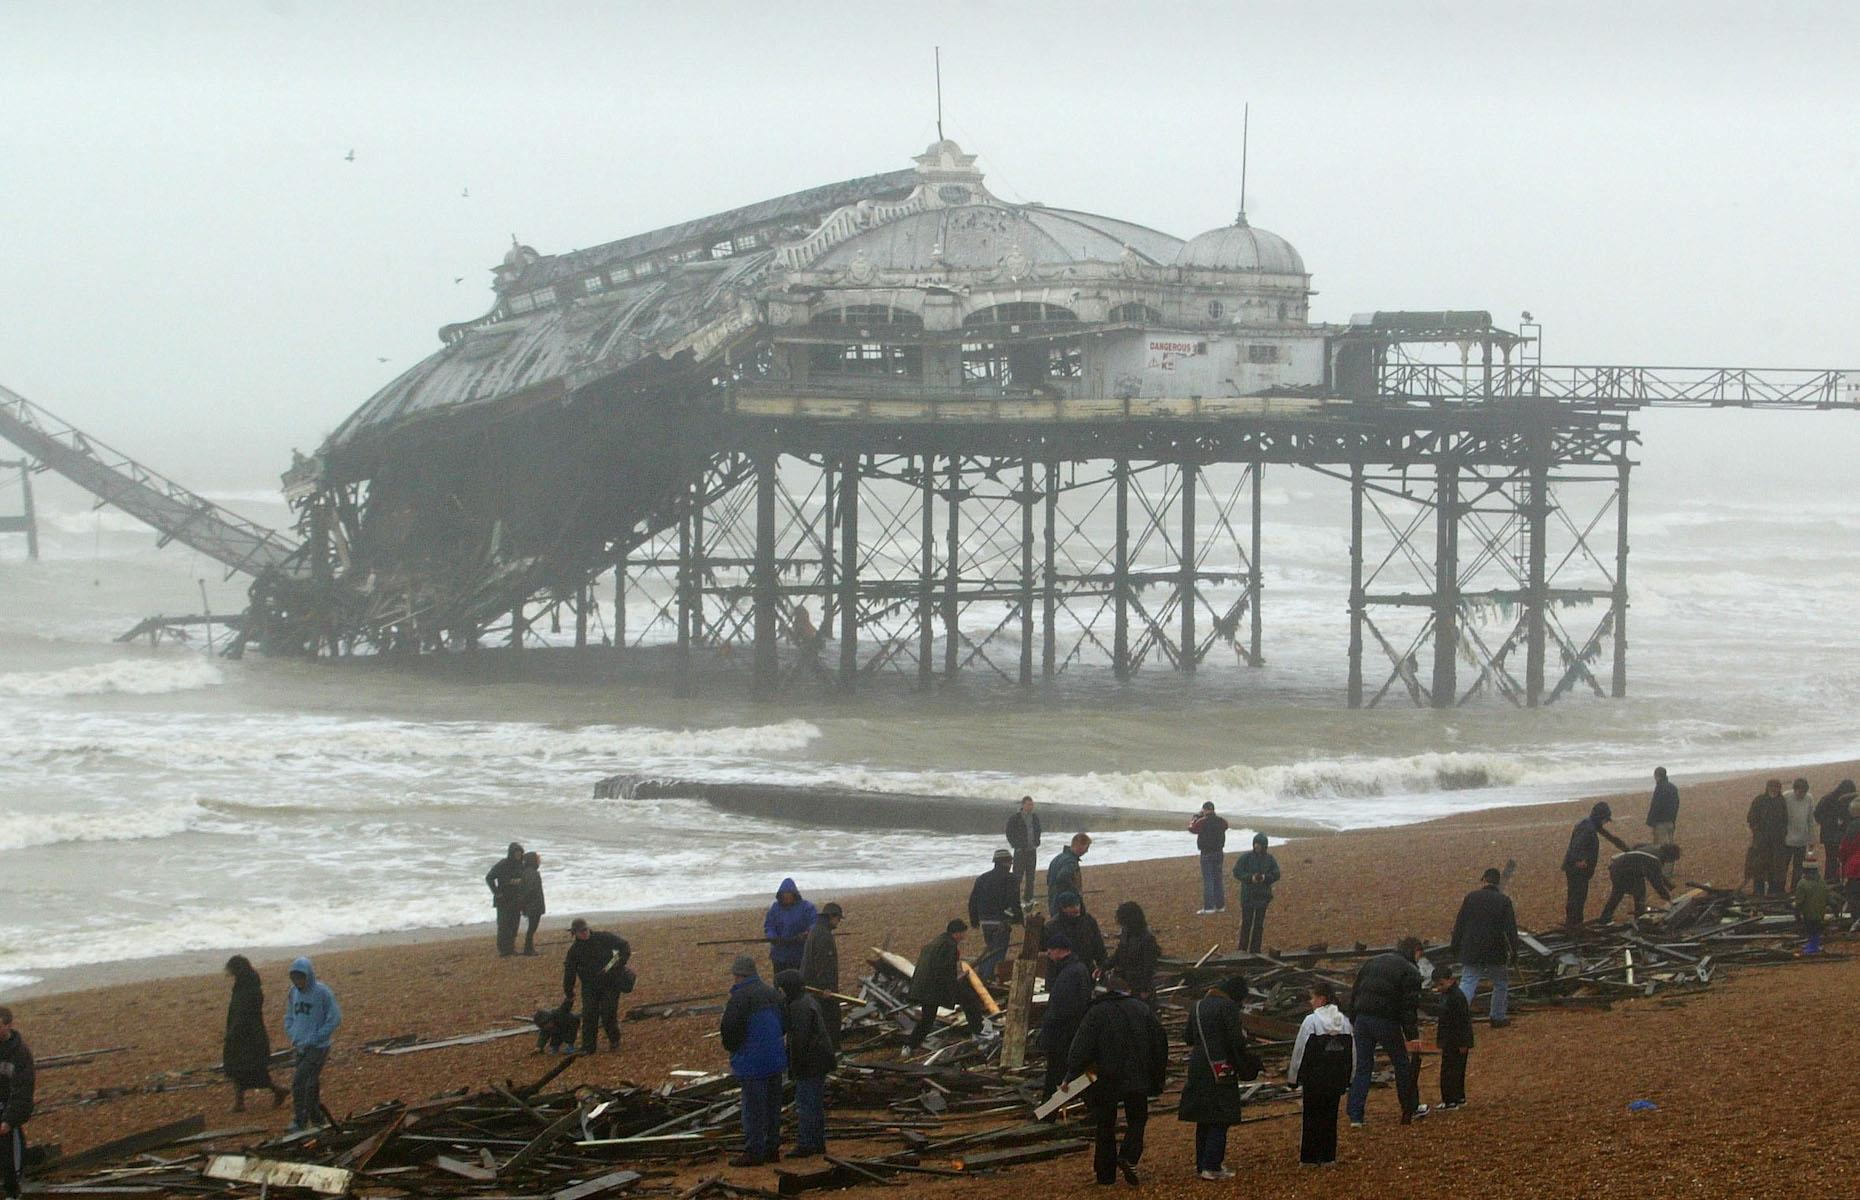 Slide 9 of 31: After decades of being pounded by the waves, the crumbling structure succumbed to heavy seas and strong winds in 2002, which caused a walkway to collapse and felled part of the concert hall. The remains of the once iconic pier caught fire the following year, in a suspected act of arson. Part of the derelict Grade I-listed structure's eastern side crumbled into the sea in January 2013 following winter storms. However the evocative ruins remain a striking landmark on the seafront. See more of the world's most historic piers and boardwalks here.